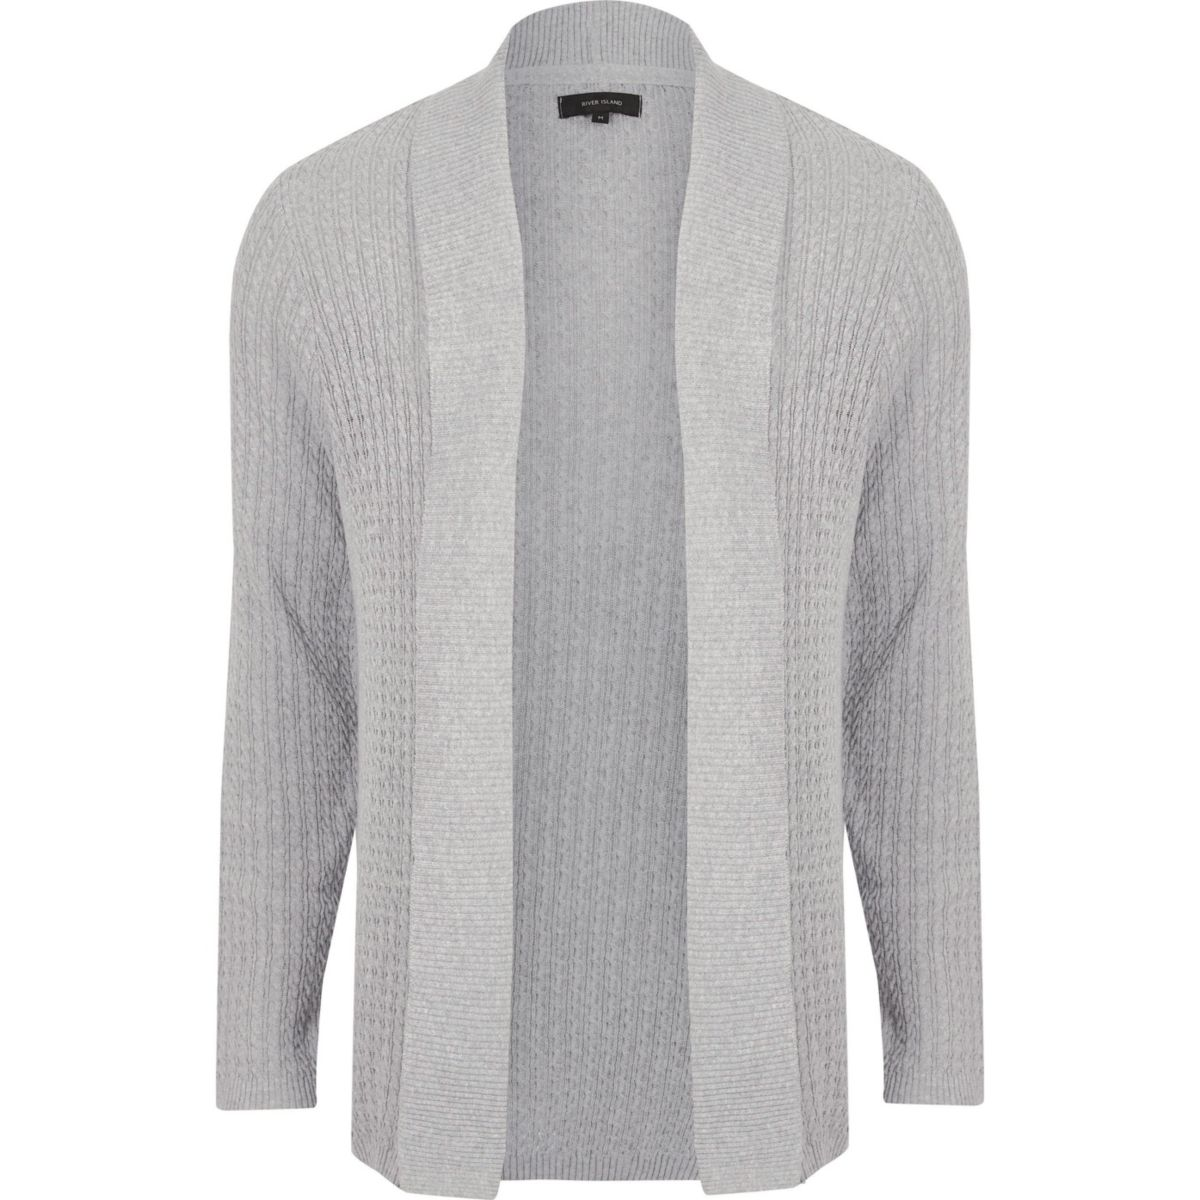 Big and Tall grey cable knit cardigan